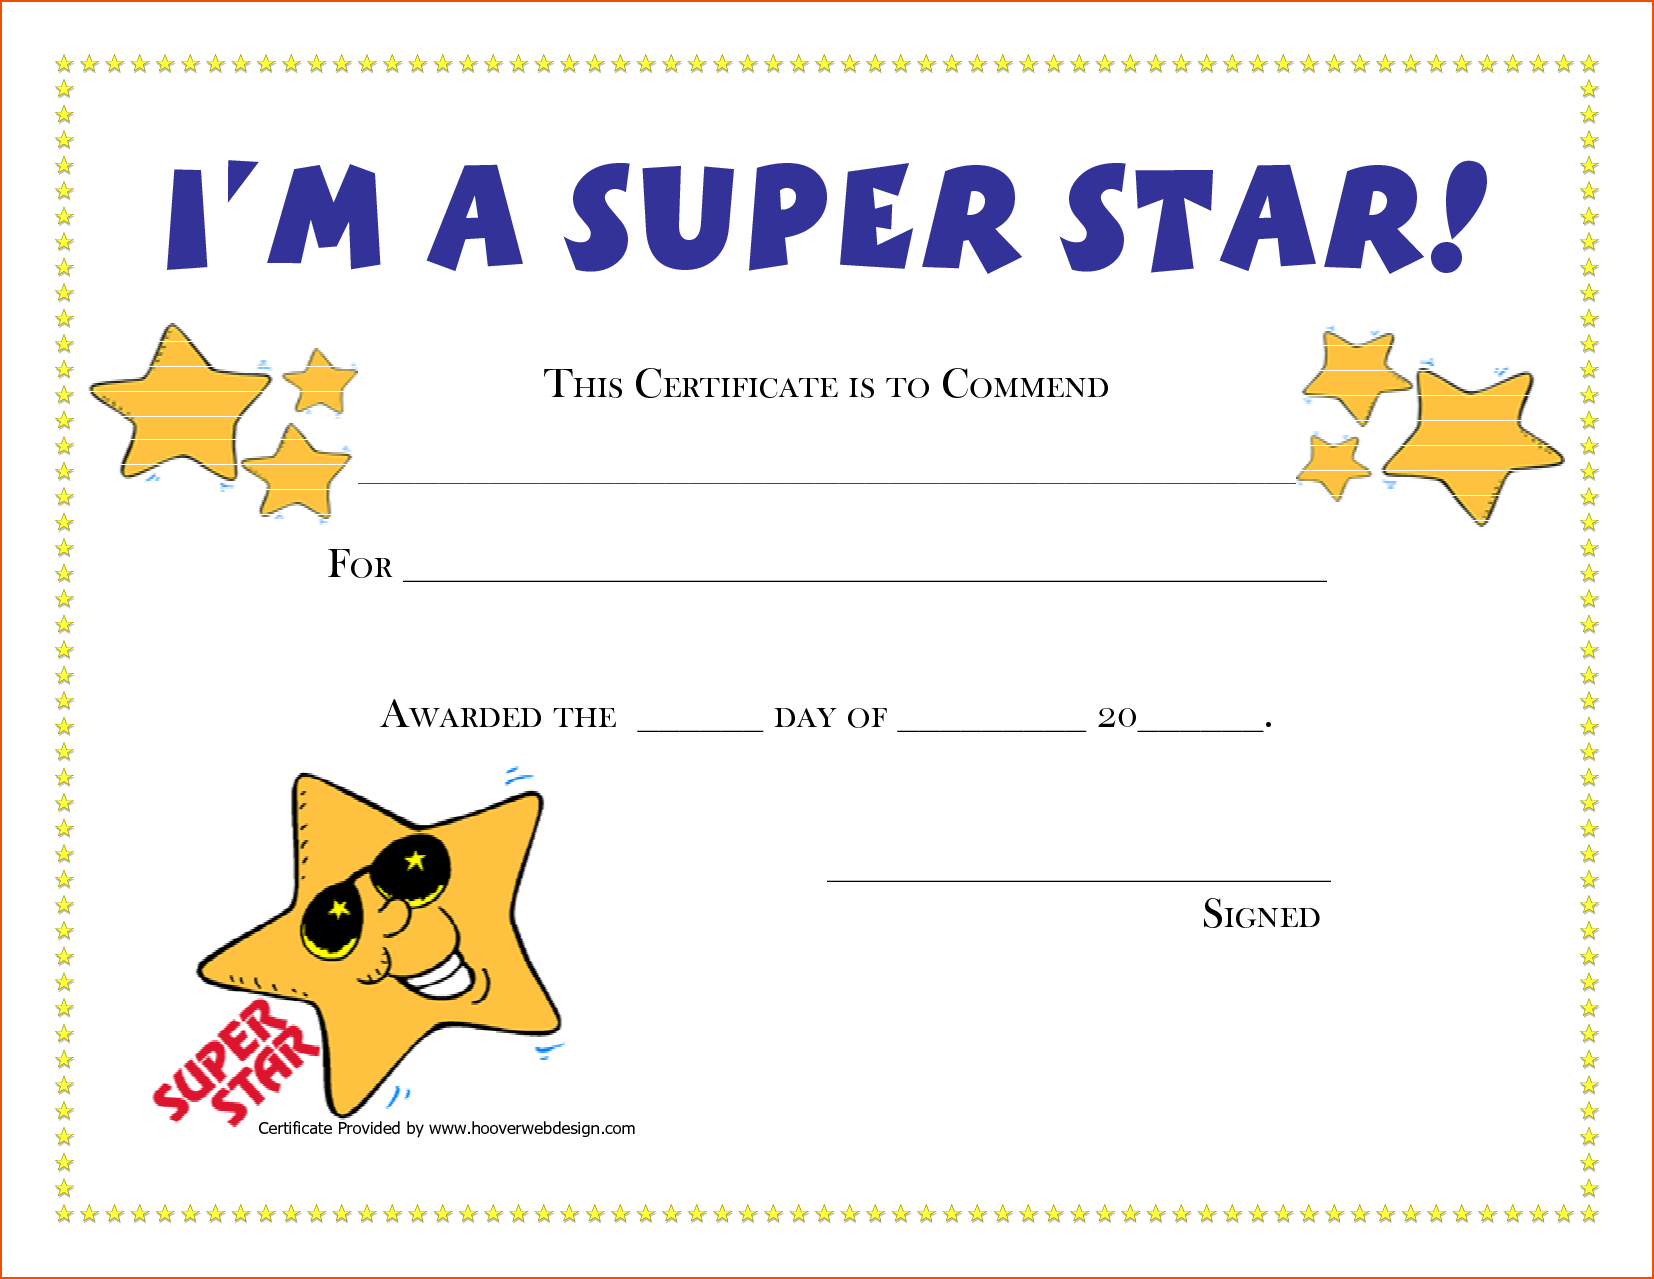 Free Printable Awards For Elementary School Award Certificates - Free Printable Award Certificates For Elementary Students